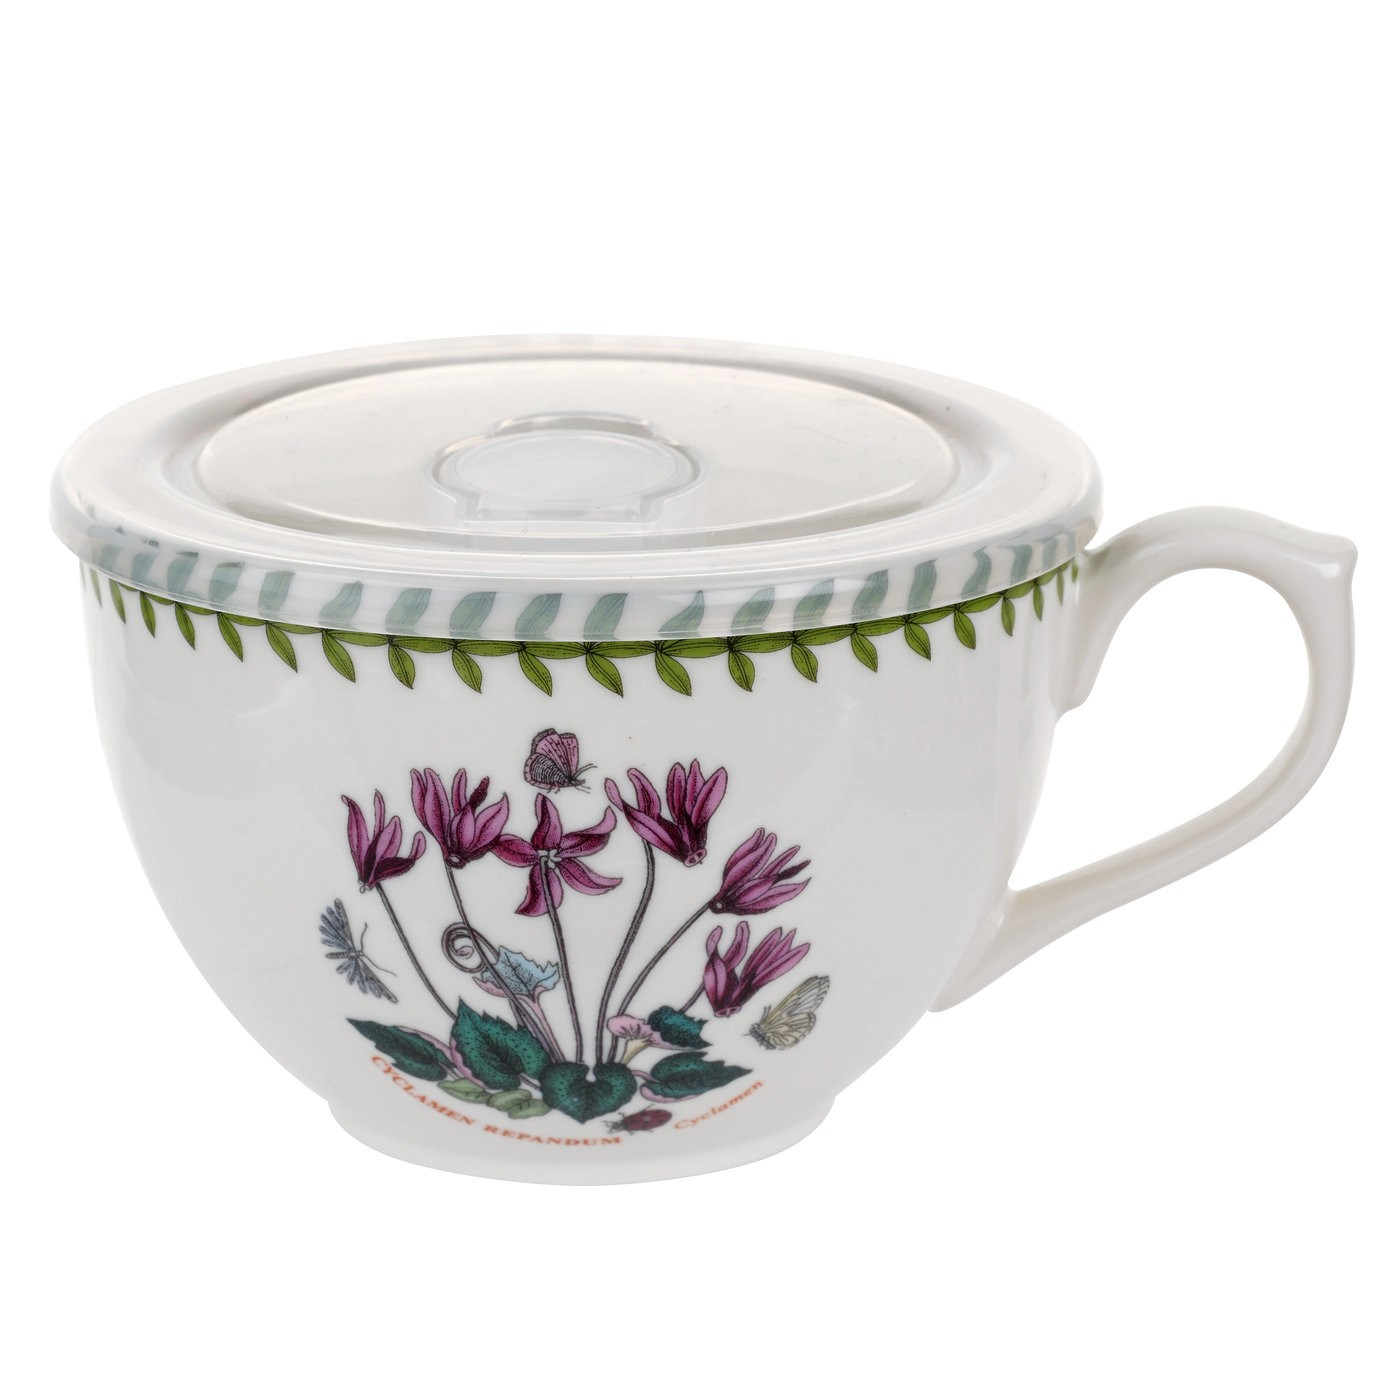 sc 1 st  The L& Stand & Botanic Garden Cyclamen Jumbo Cup with Lid by Portmeirion